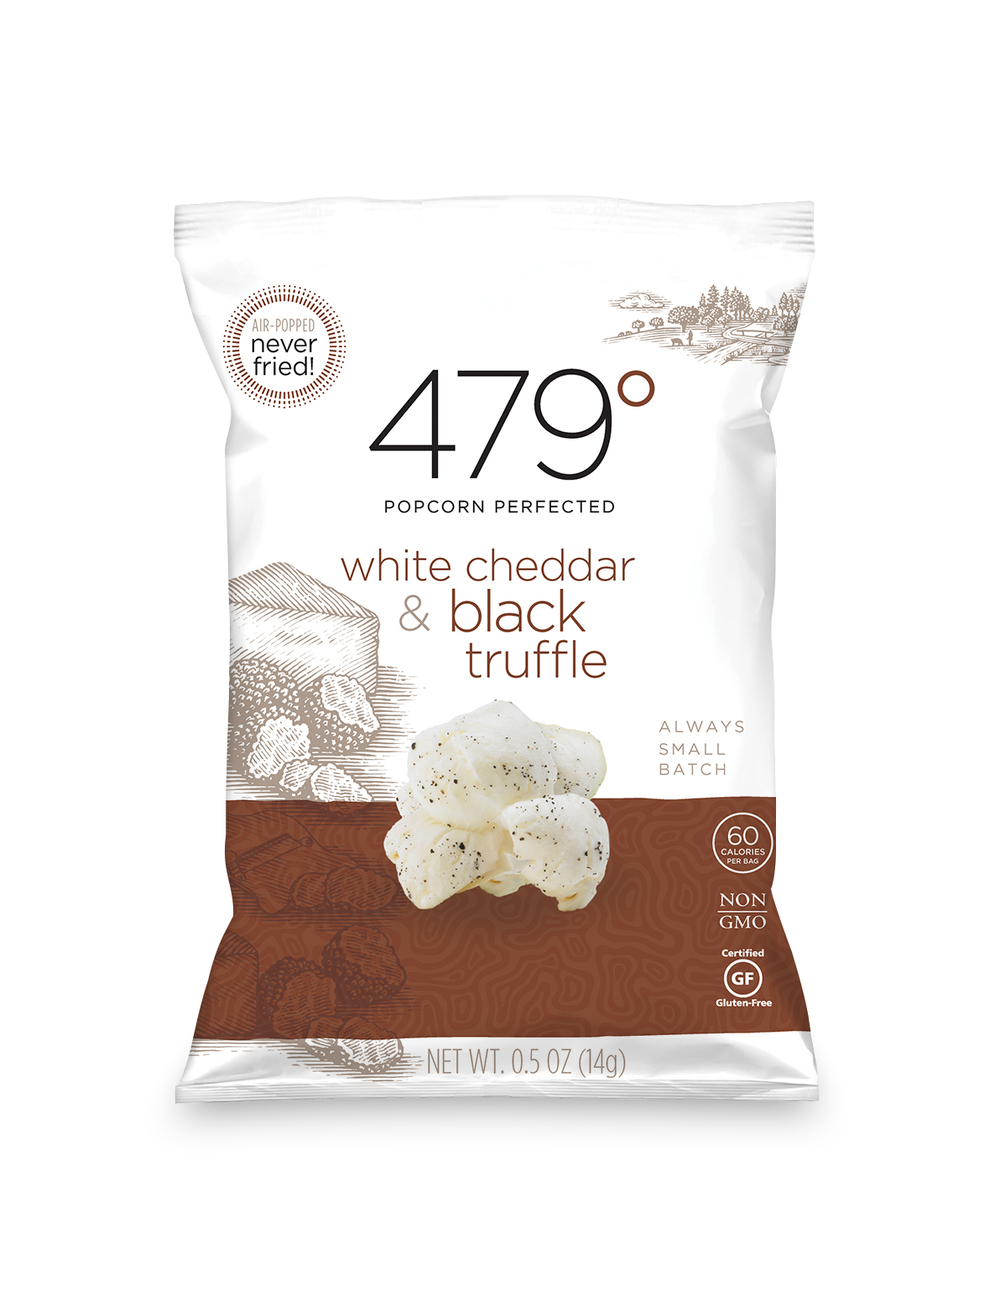 .5oz white cheddar & black truffle